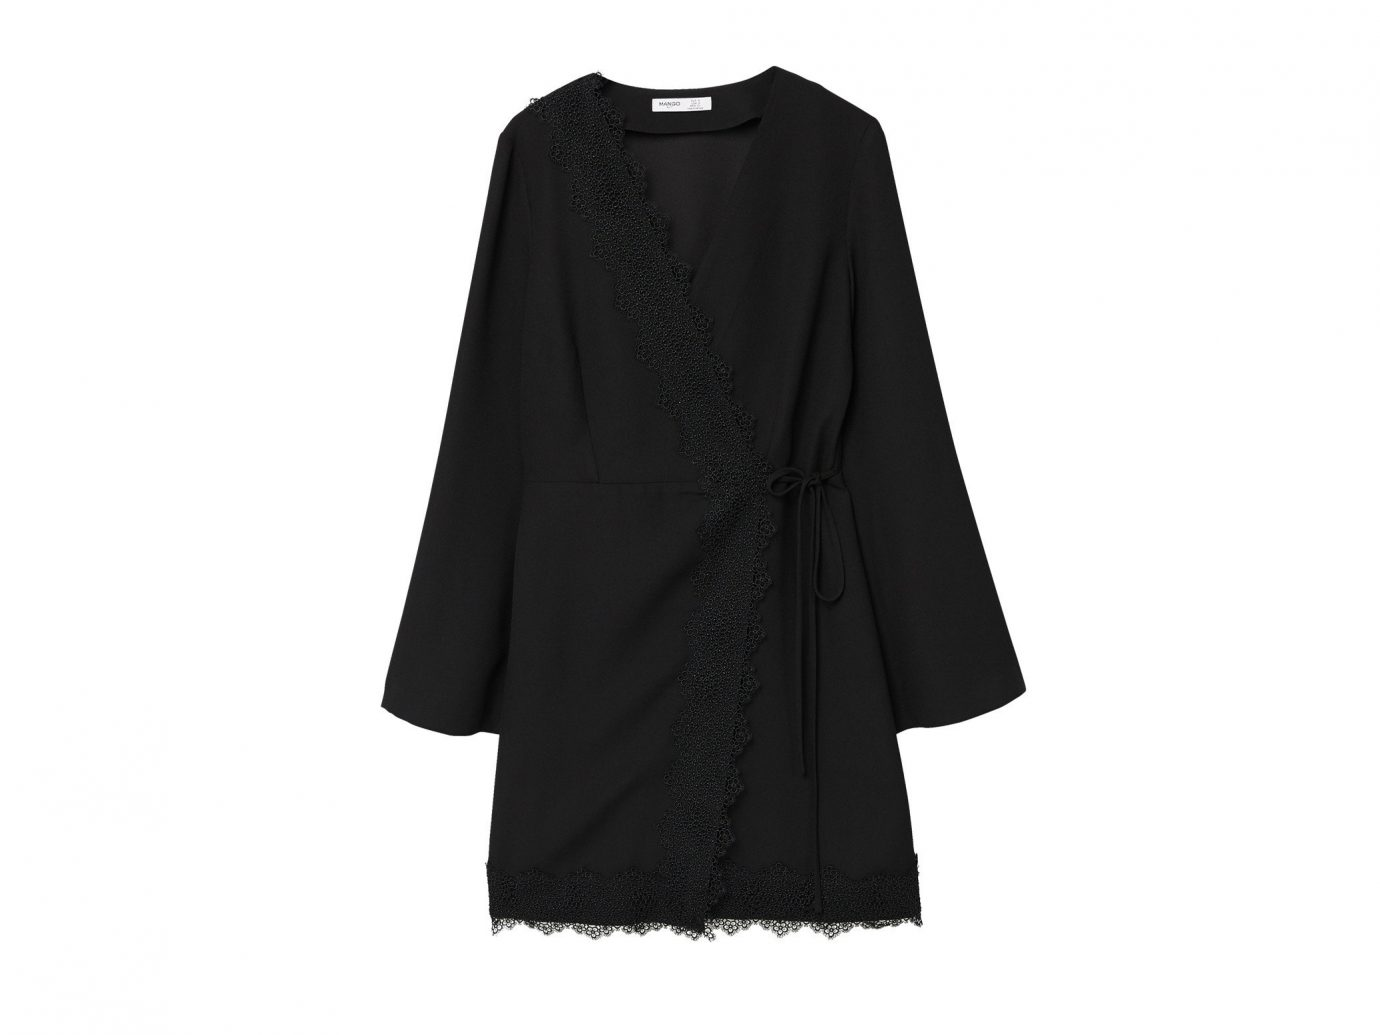 Style + Design Travel Shop clothing black sleeve coat dress outerwear little black dress day dress